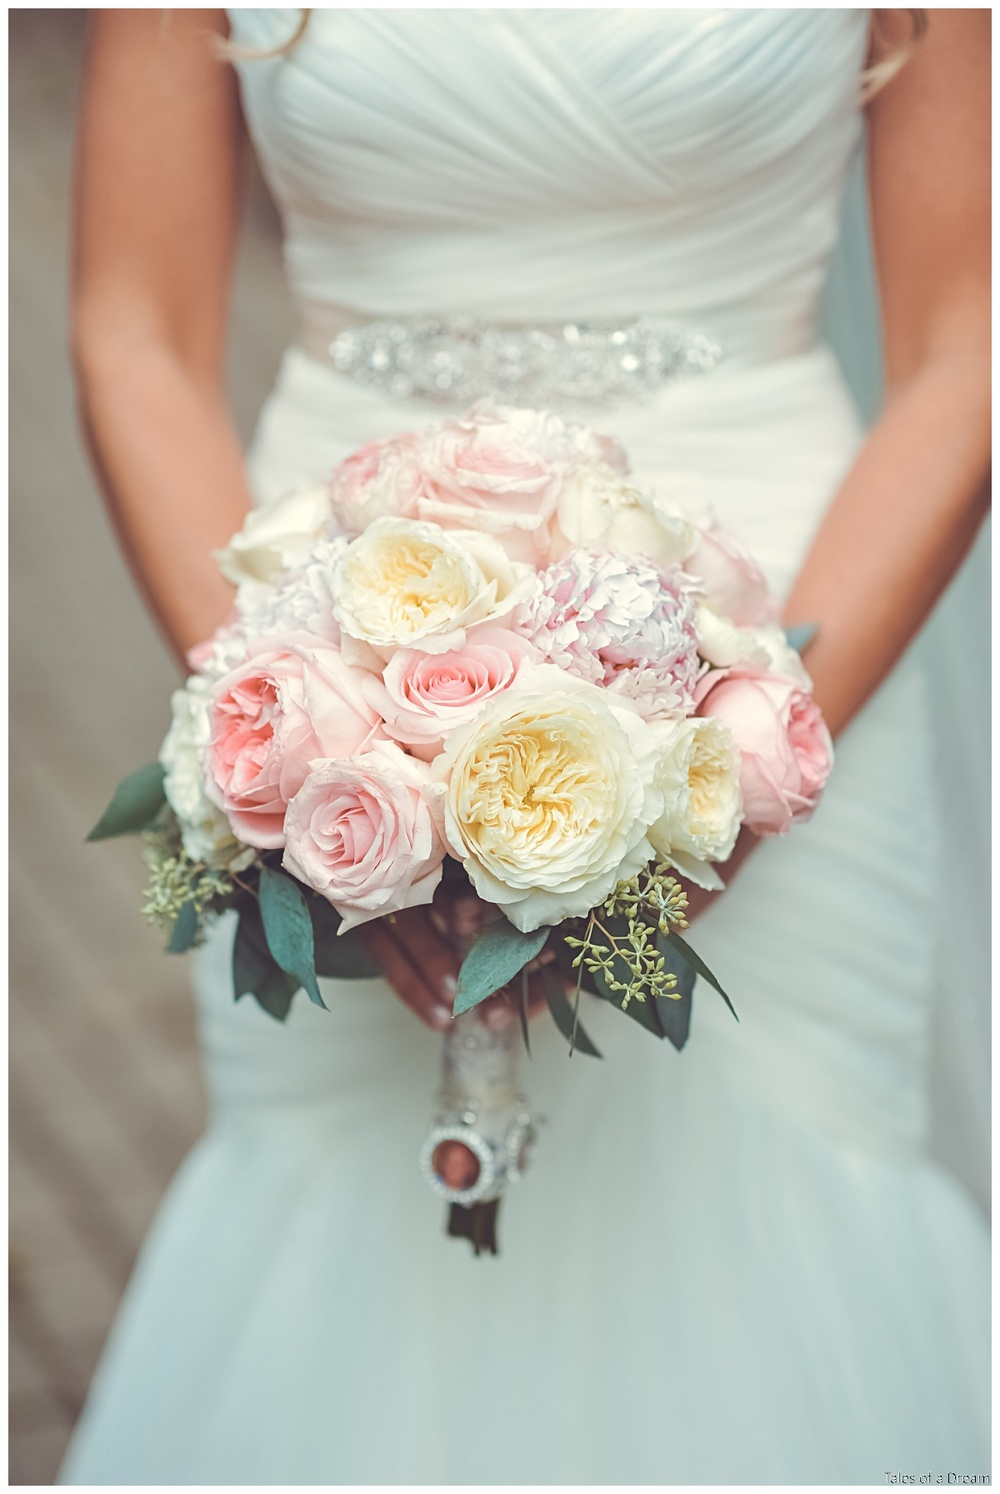 One of the most gorgeous bouquets we've ever seen.